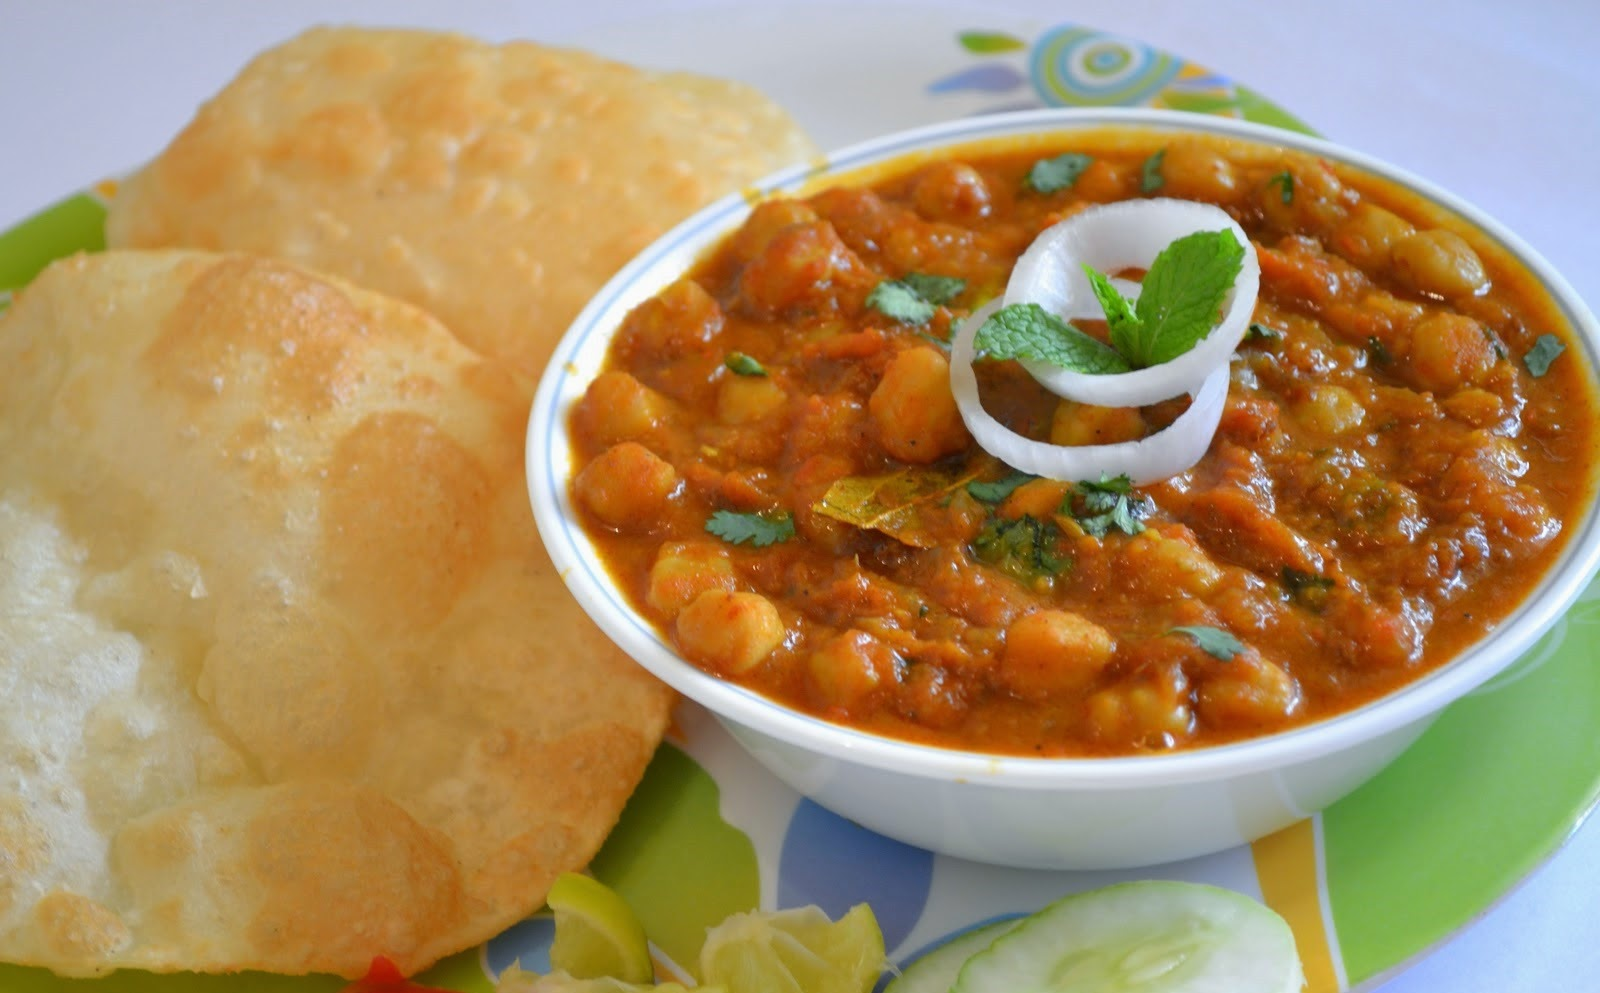 Famous indian food blog food 10 foods you should definitely eat in india before forumfinder Choice Image